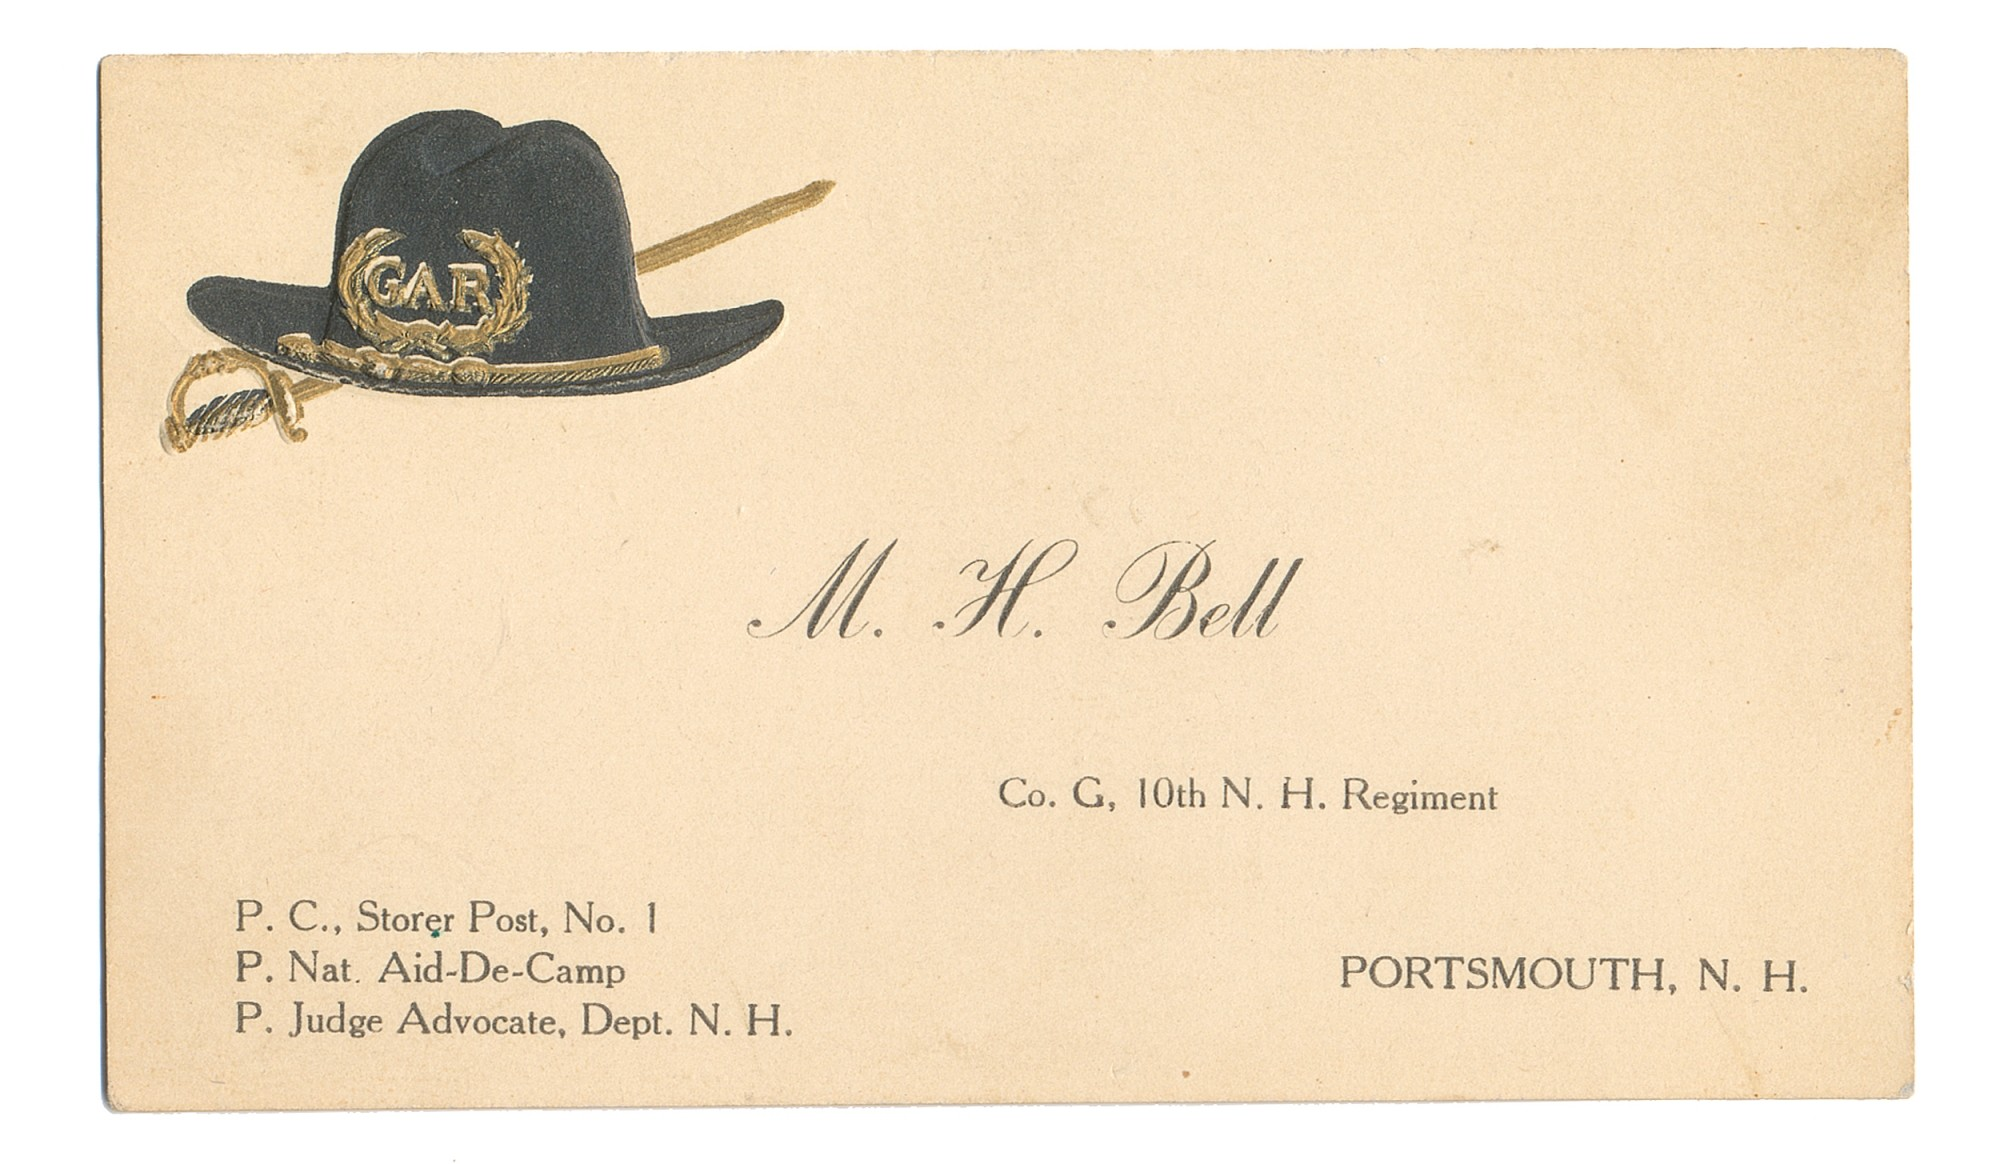 GAR BUSINESS CARD FOR 10TH NEW HAMPSHIRE SOLDIER